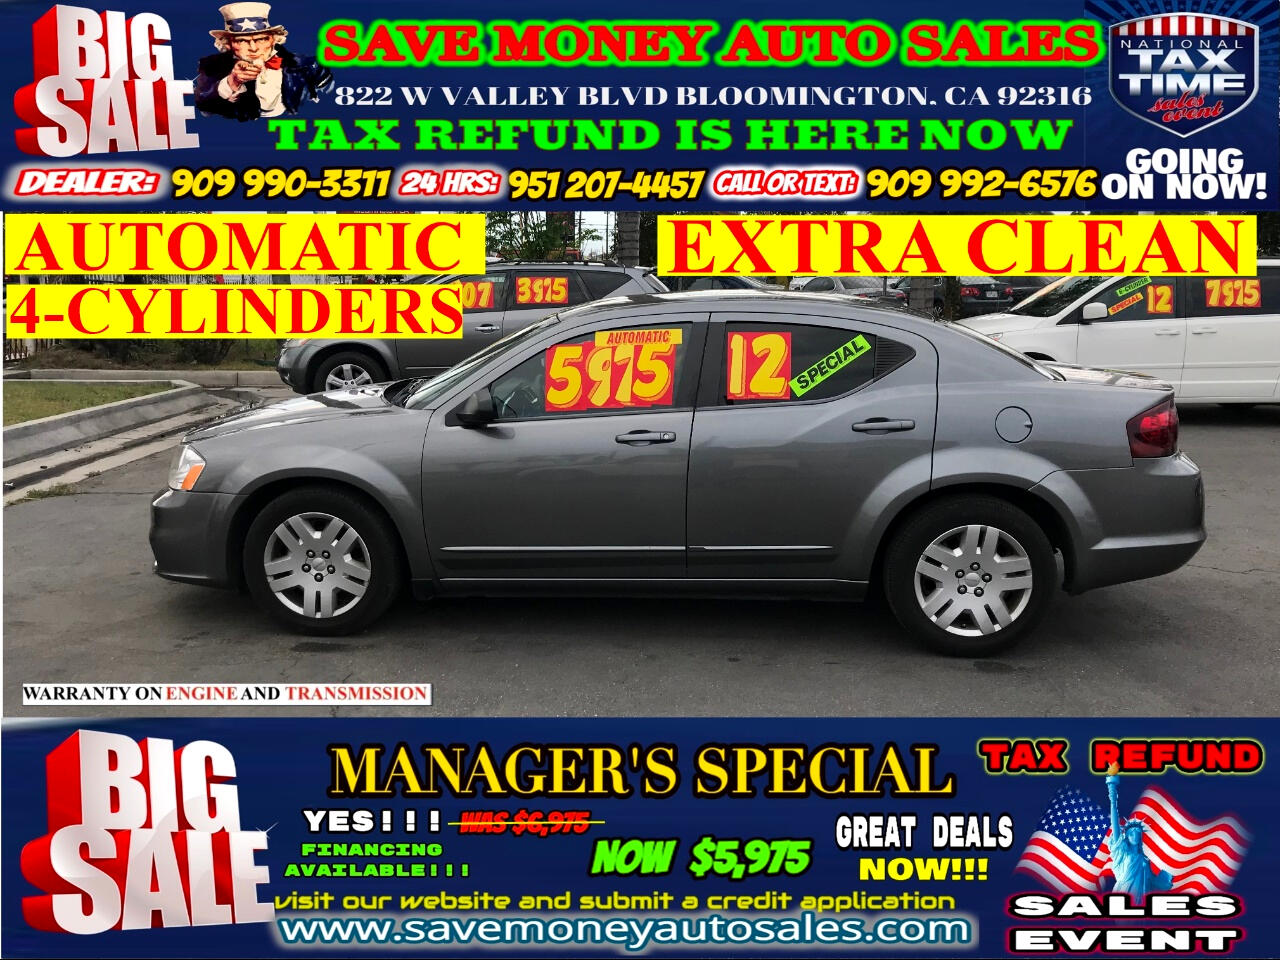 2012 Dodge Avenger BLUETOOTH>DVD PLAYER>ONLY 4 CYLINDERS>>>